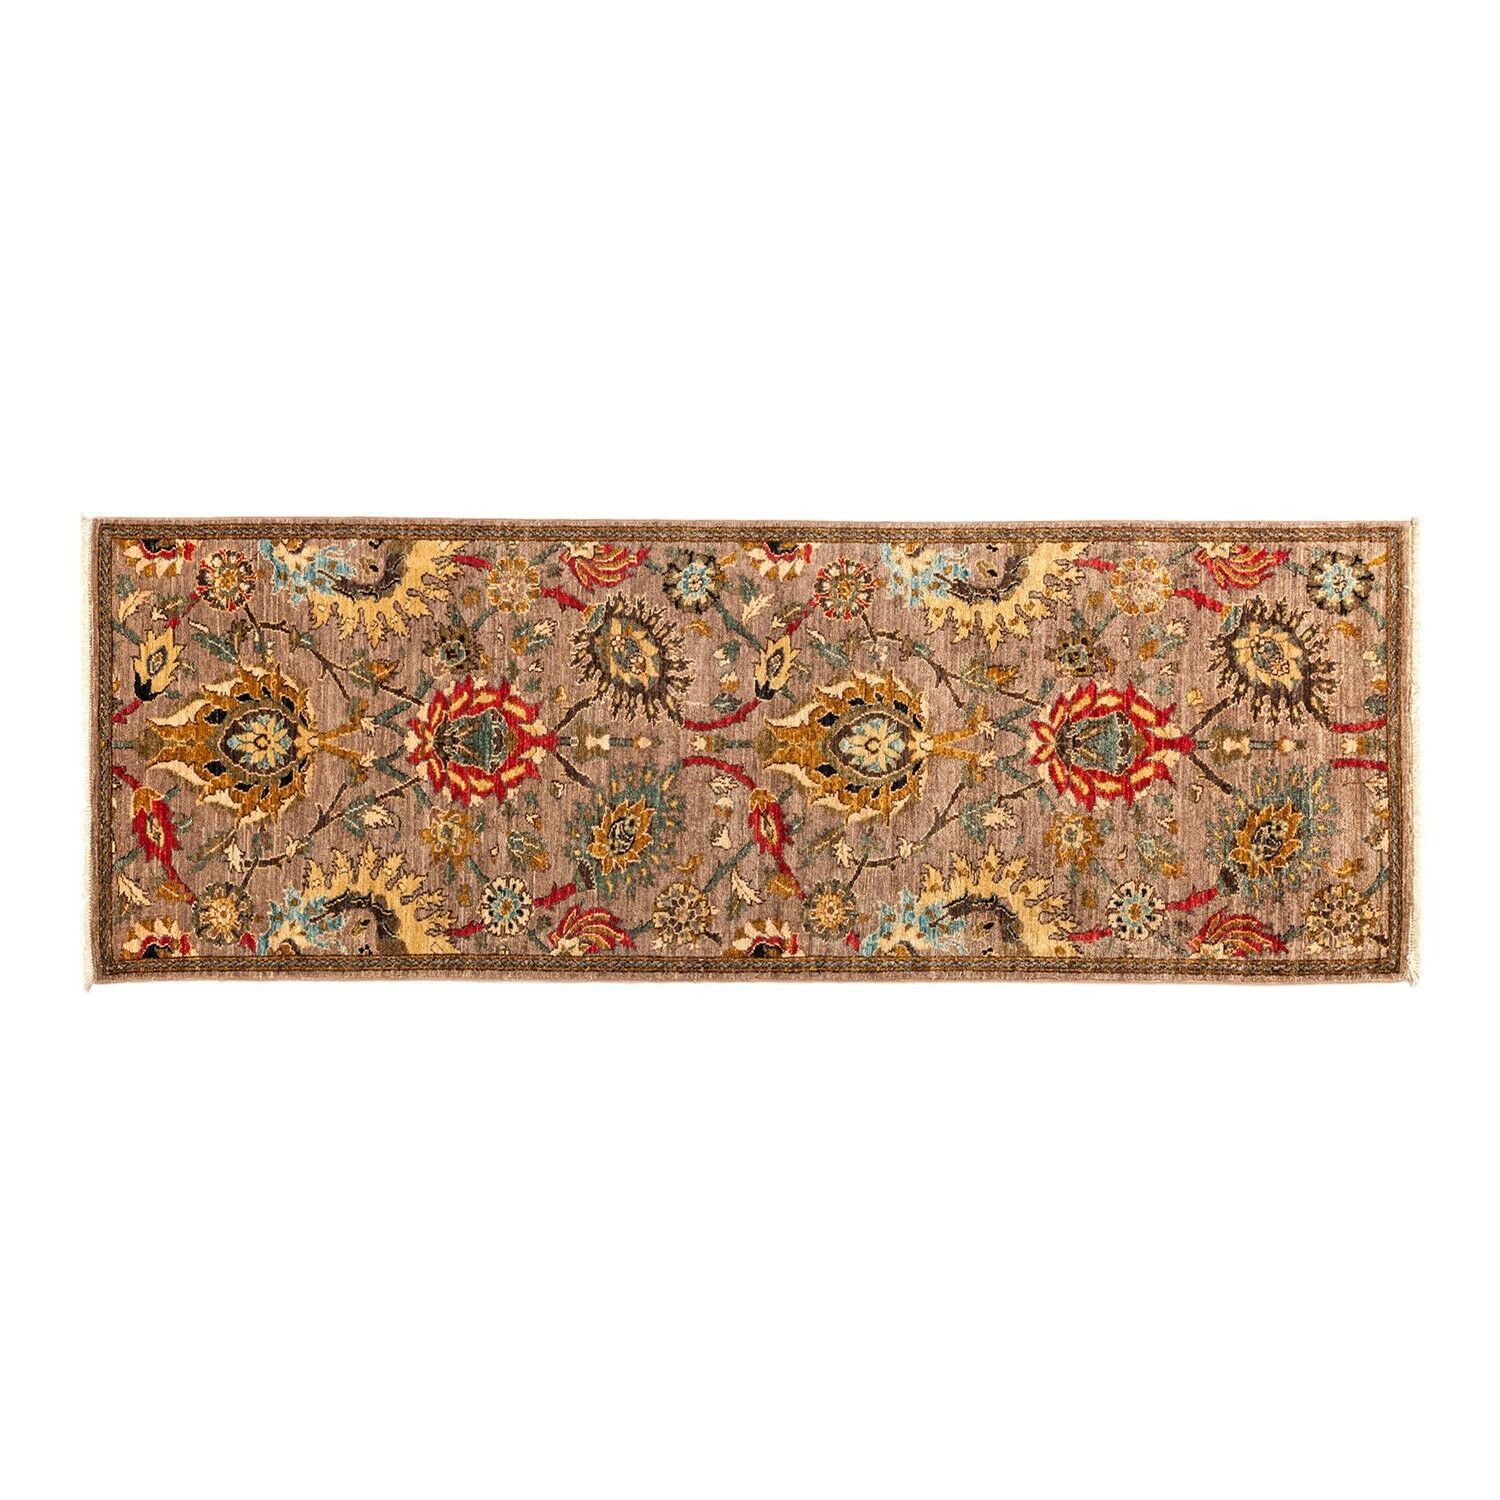 One-of-a-Kind Eclectic Vivid Hand-Knotted Multicolor Area Rug